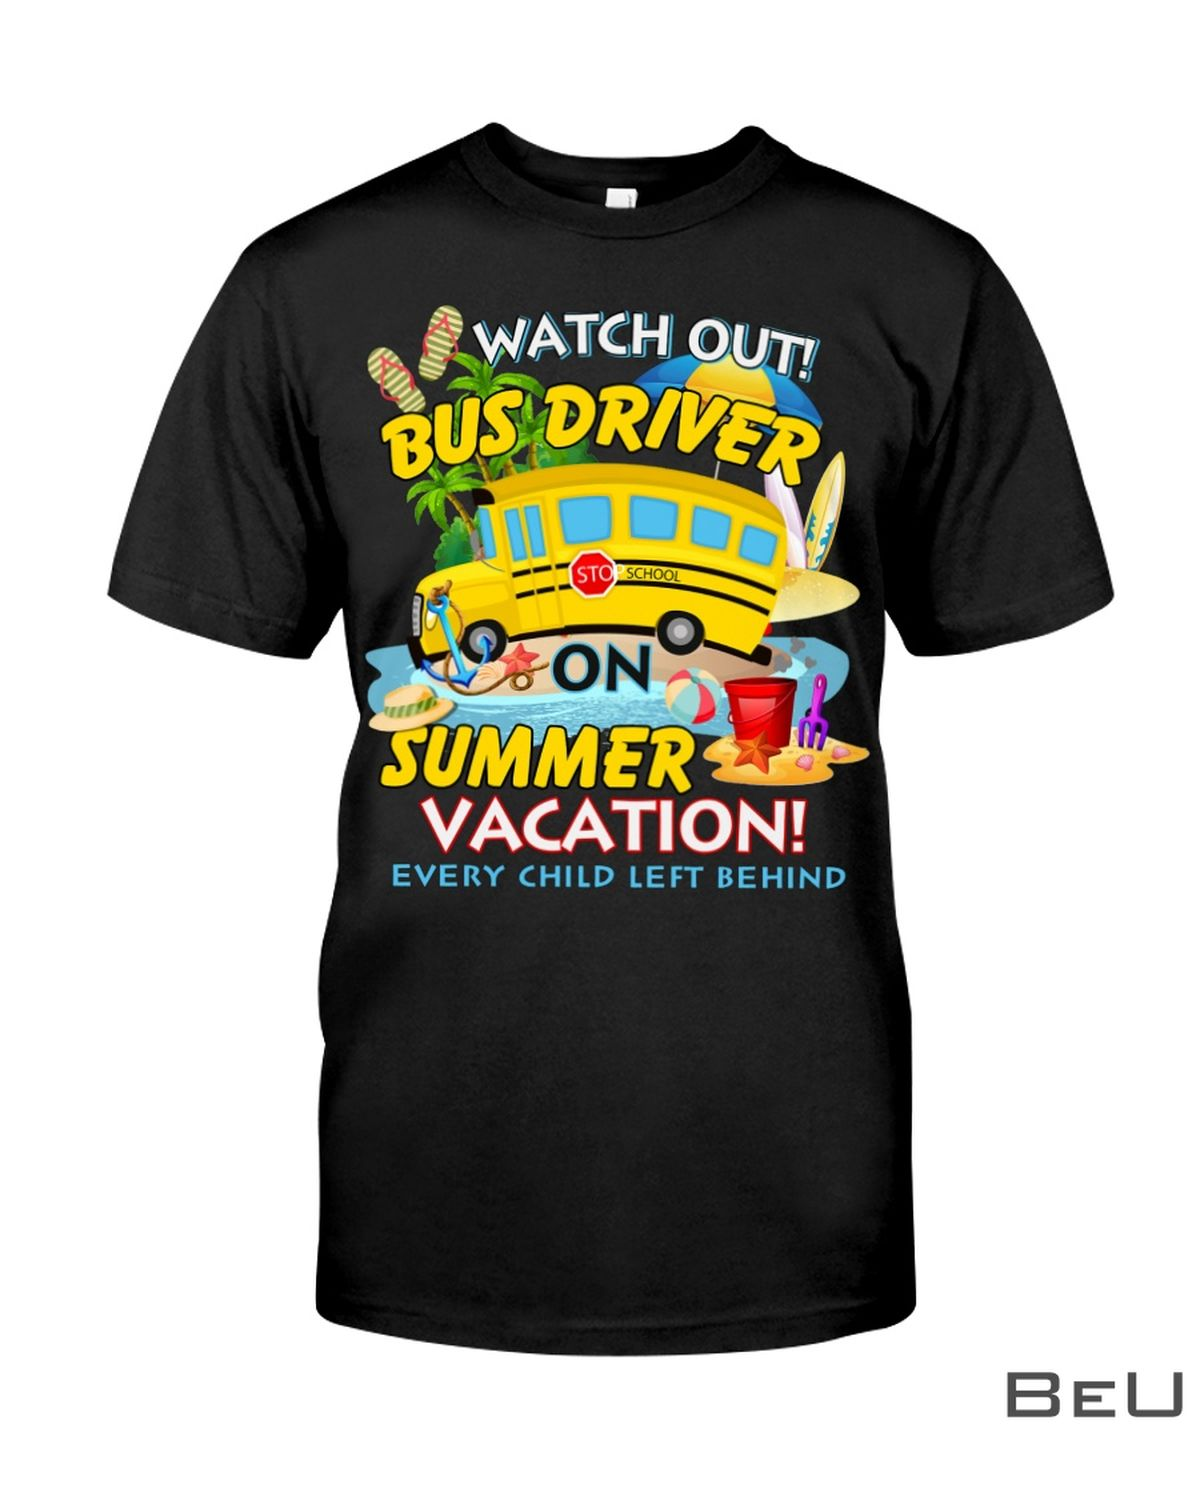 Watch Out Bus Driver On Summer Vacation Every Child Left Behind Shirt